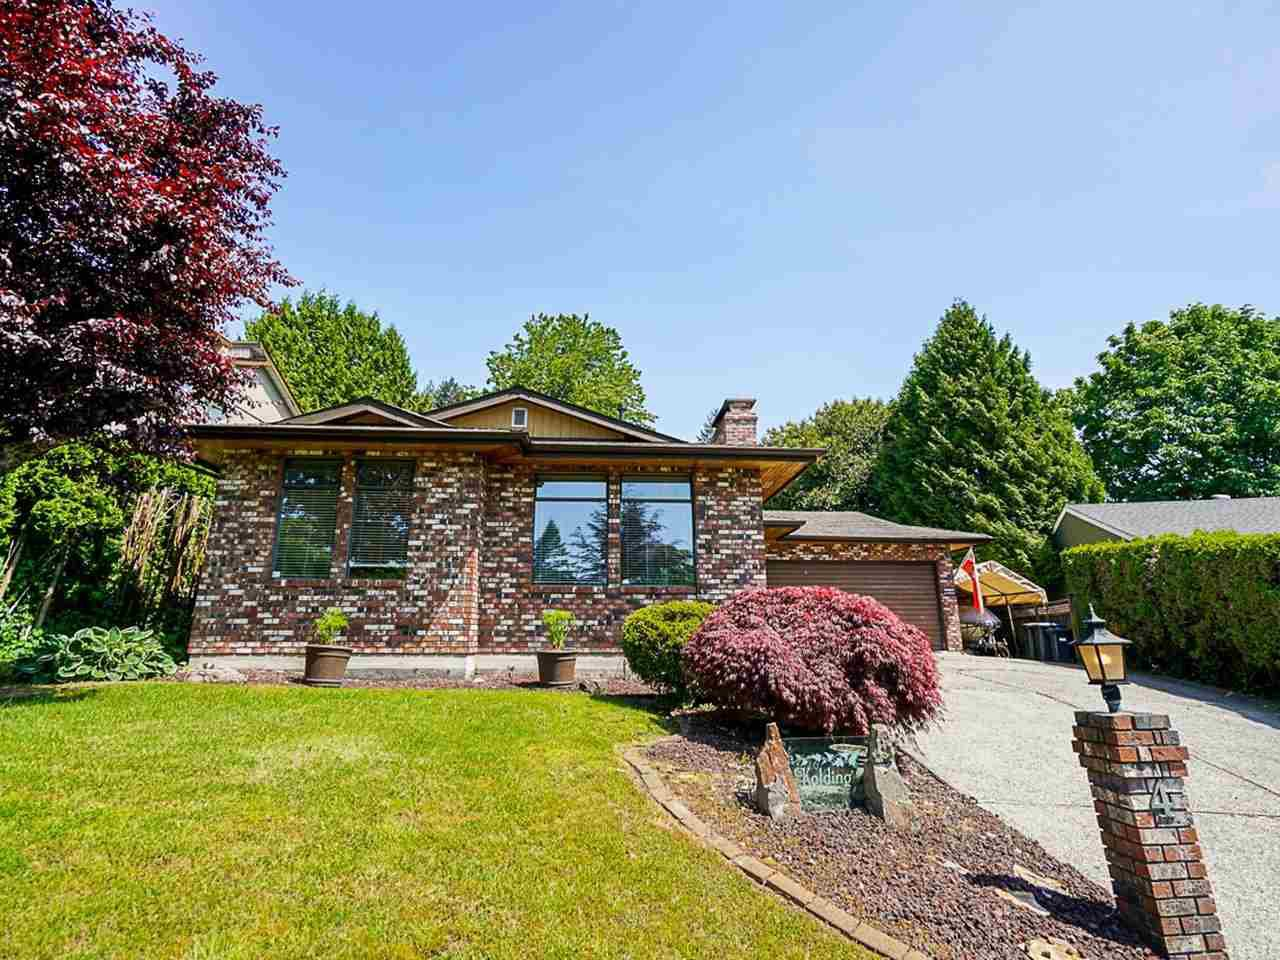 """Main Photo: 4 BENSON Drive in Port Moody: North Shore Pt Moody House for sale in """"PLEASANTSIDE"""" : MLS®# R2459111"""